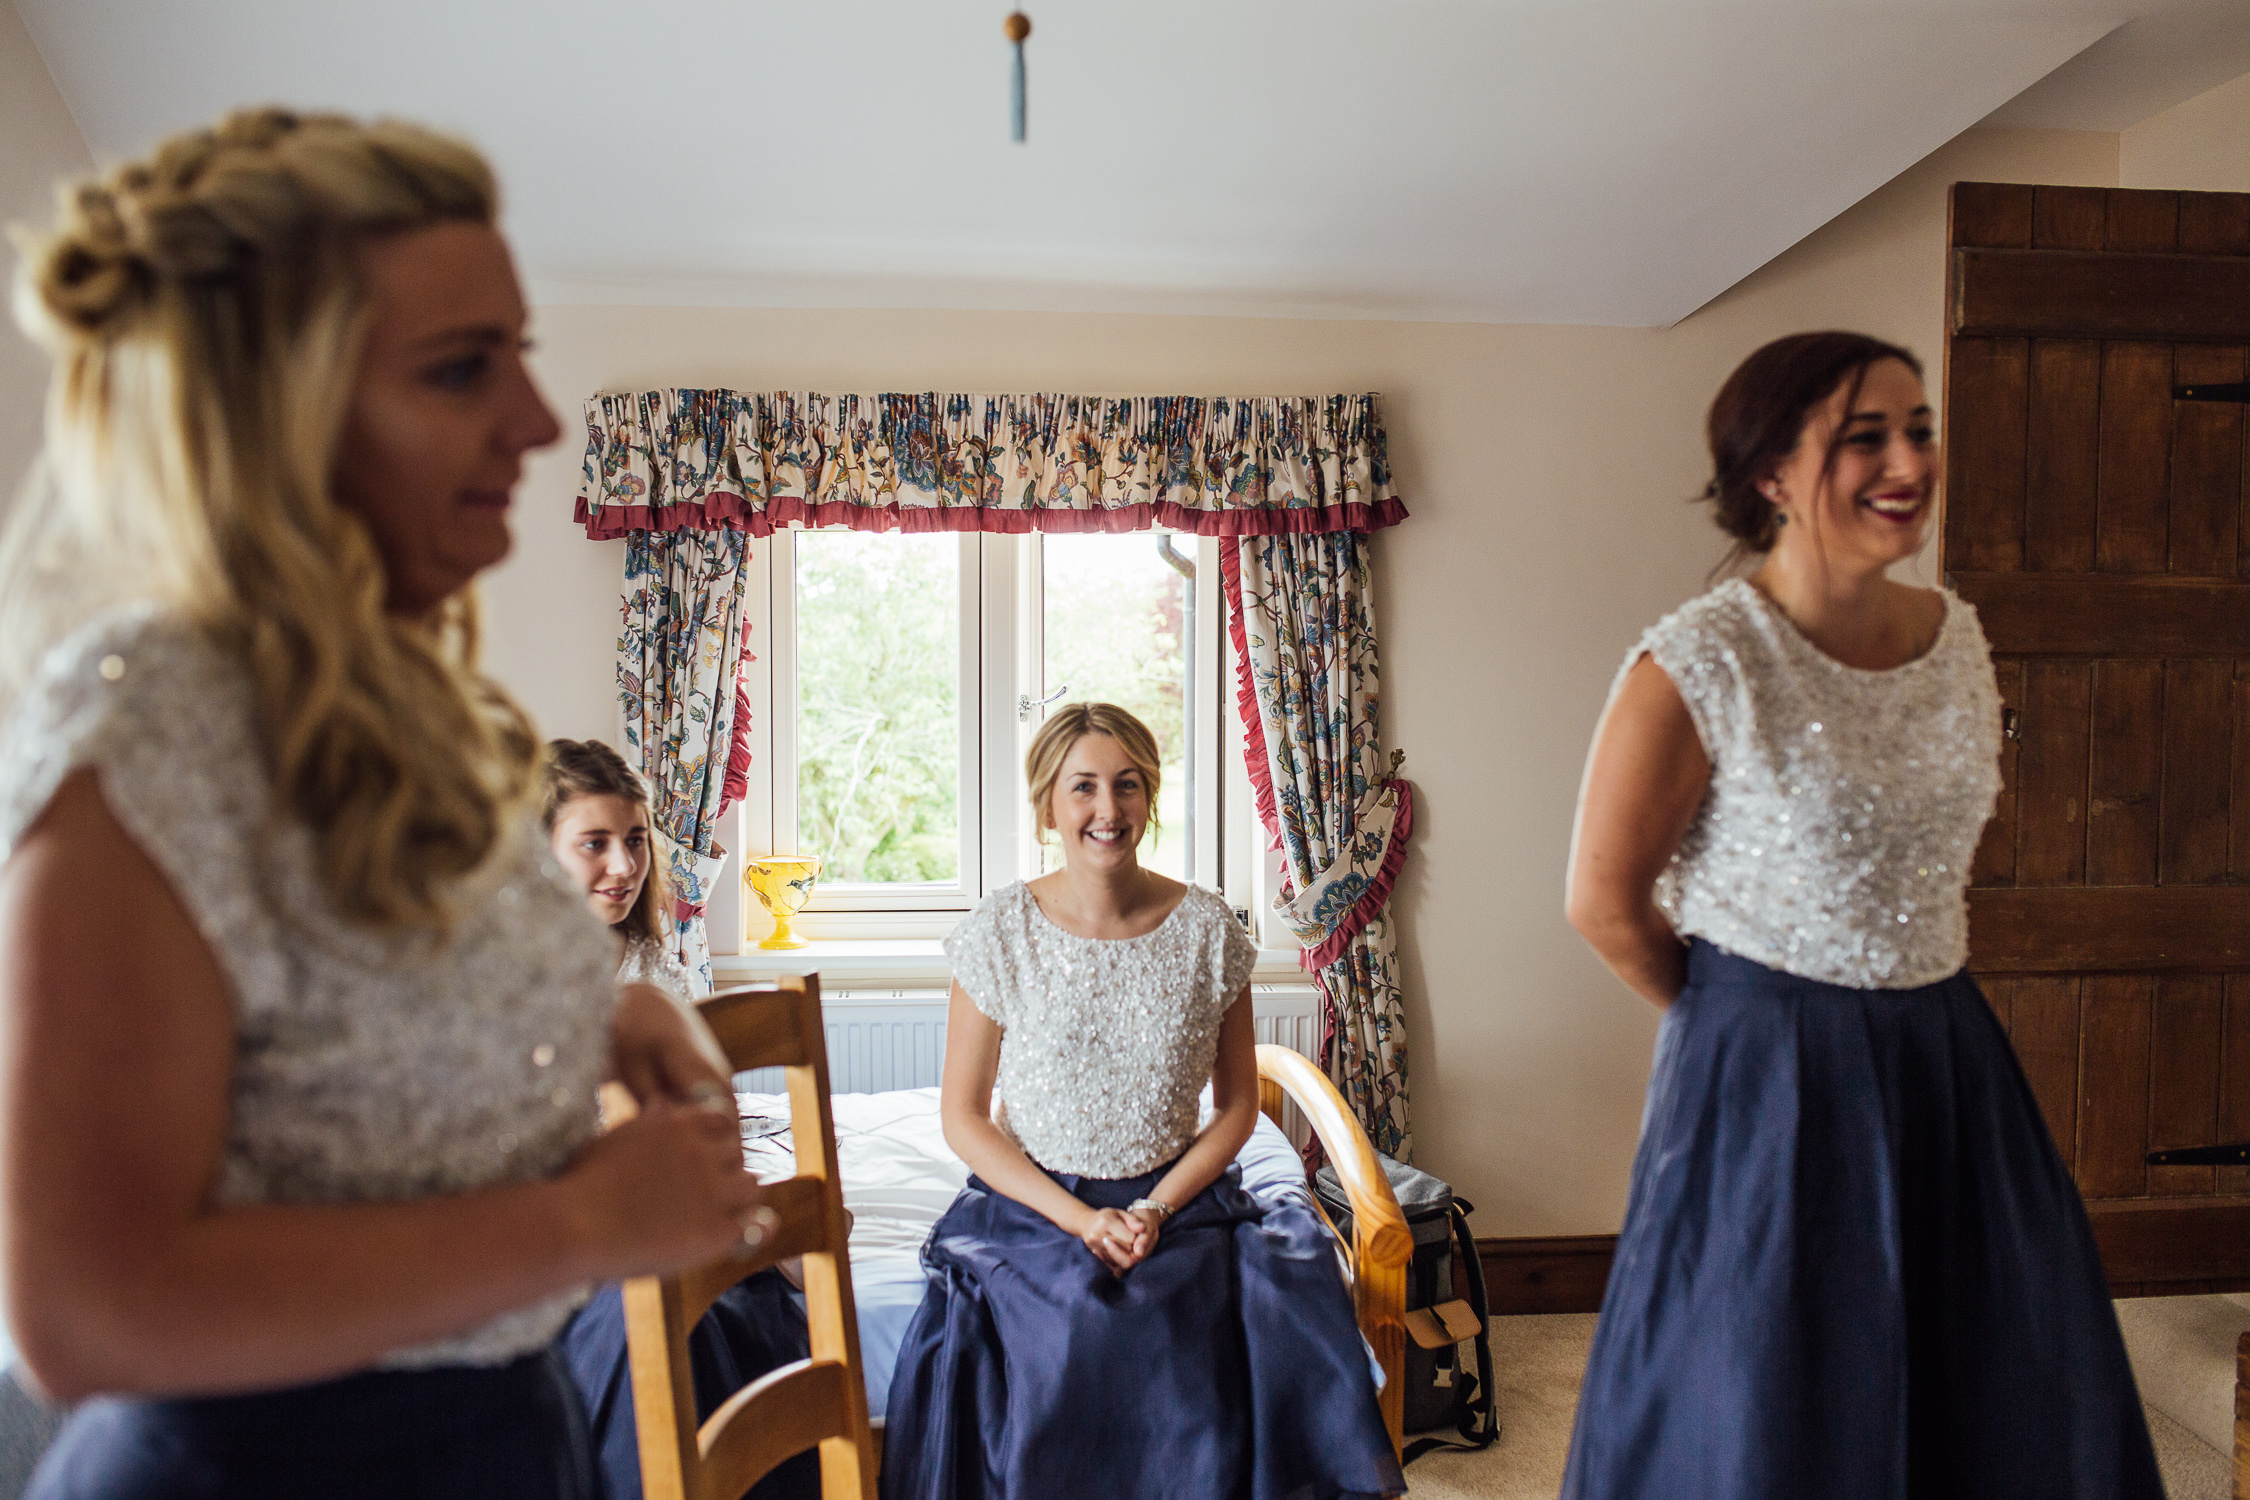 SHREWSBURY_WEDDING_PHOTOGRAPHER-12.jpg